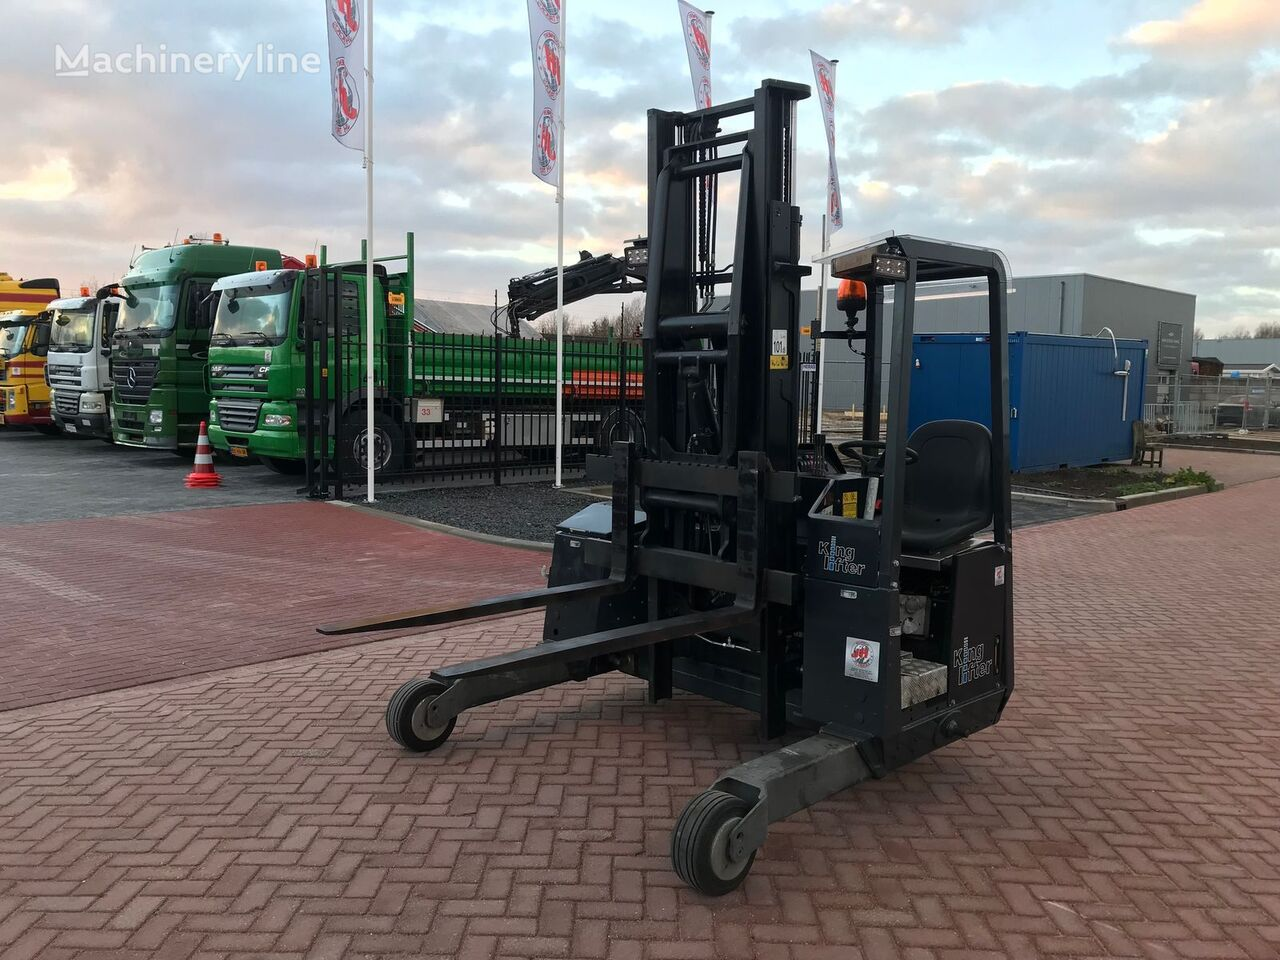 M&c Cilinder Terberg Tkl Mc 1x3 Truck Mounted Forklifts For Sale Portable